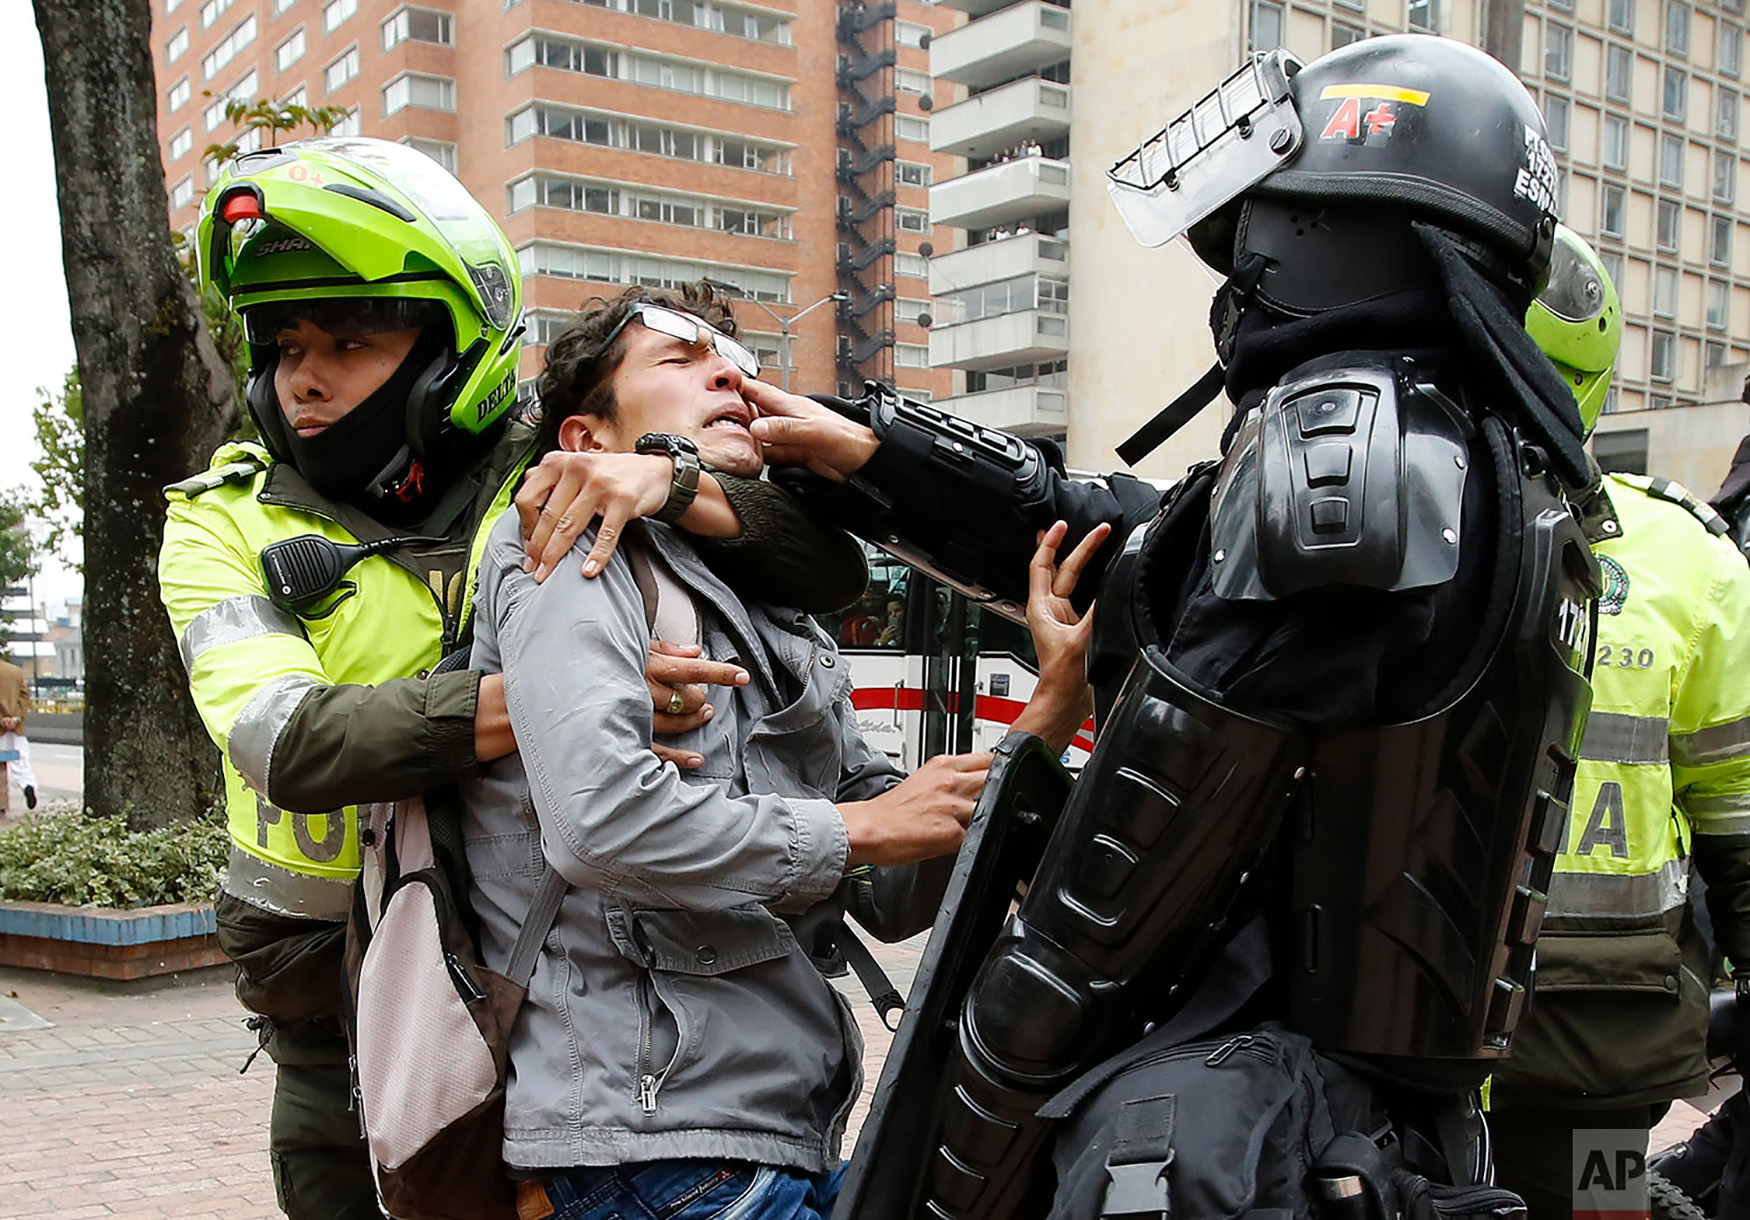 Police detain a man who was blocking traffic during a protest against a decree by Colombia's President Ivan Duque that would allow police to confiscate any amount of drugs from people in the street in Bogota, Colombia, Sept. 6, 2018. In 2012, Colombia's Constitutional Court approved a government bill to decriminalize the possession of small quantities of drugs for personal use. (AP Photo/Fernando Vergara)